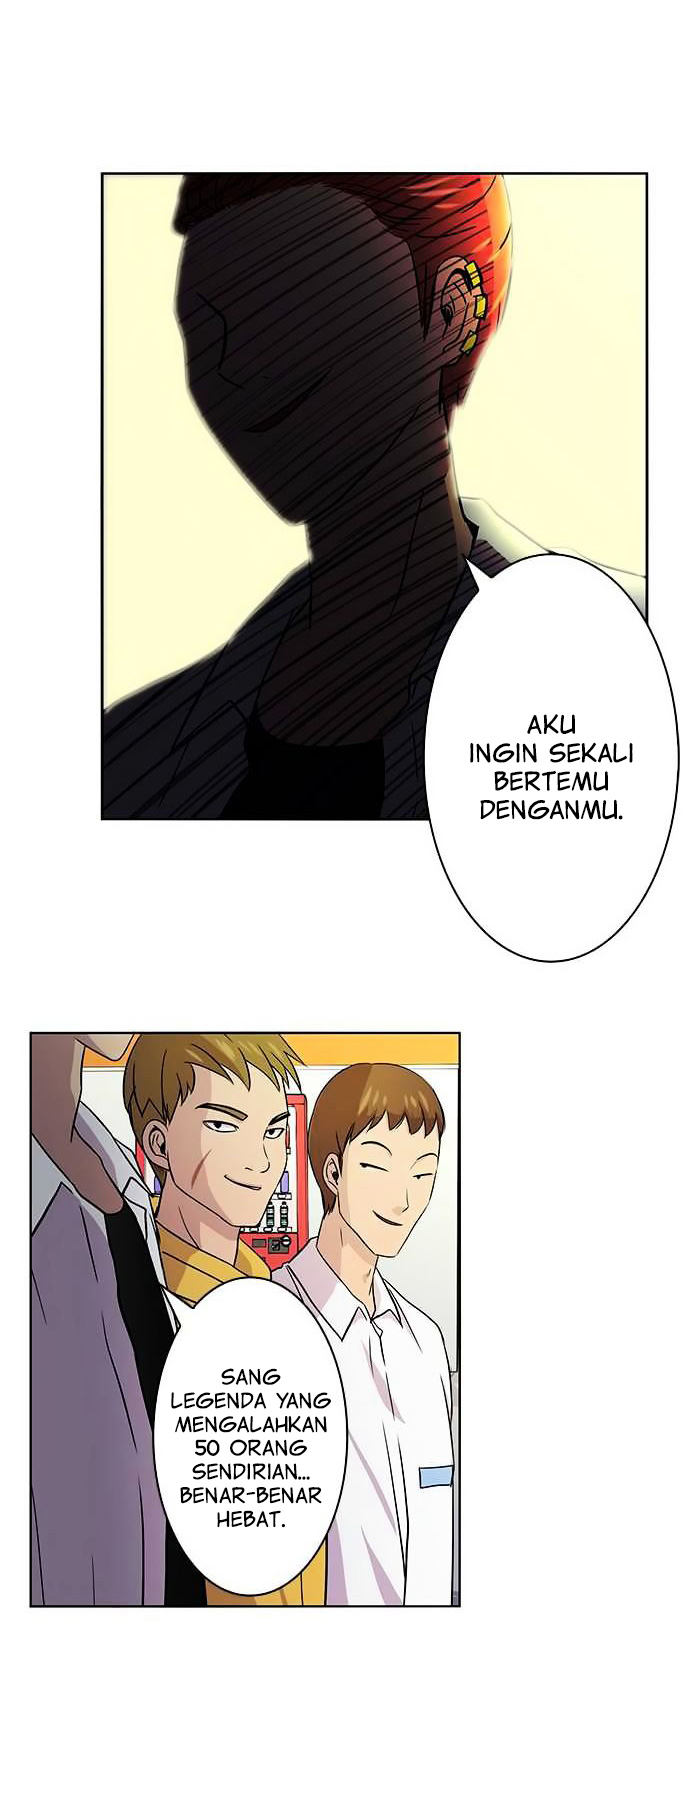 Baca Komik I Want To Be Normal Chapter 6 Komik Station